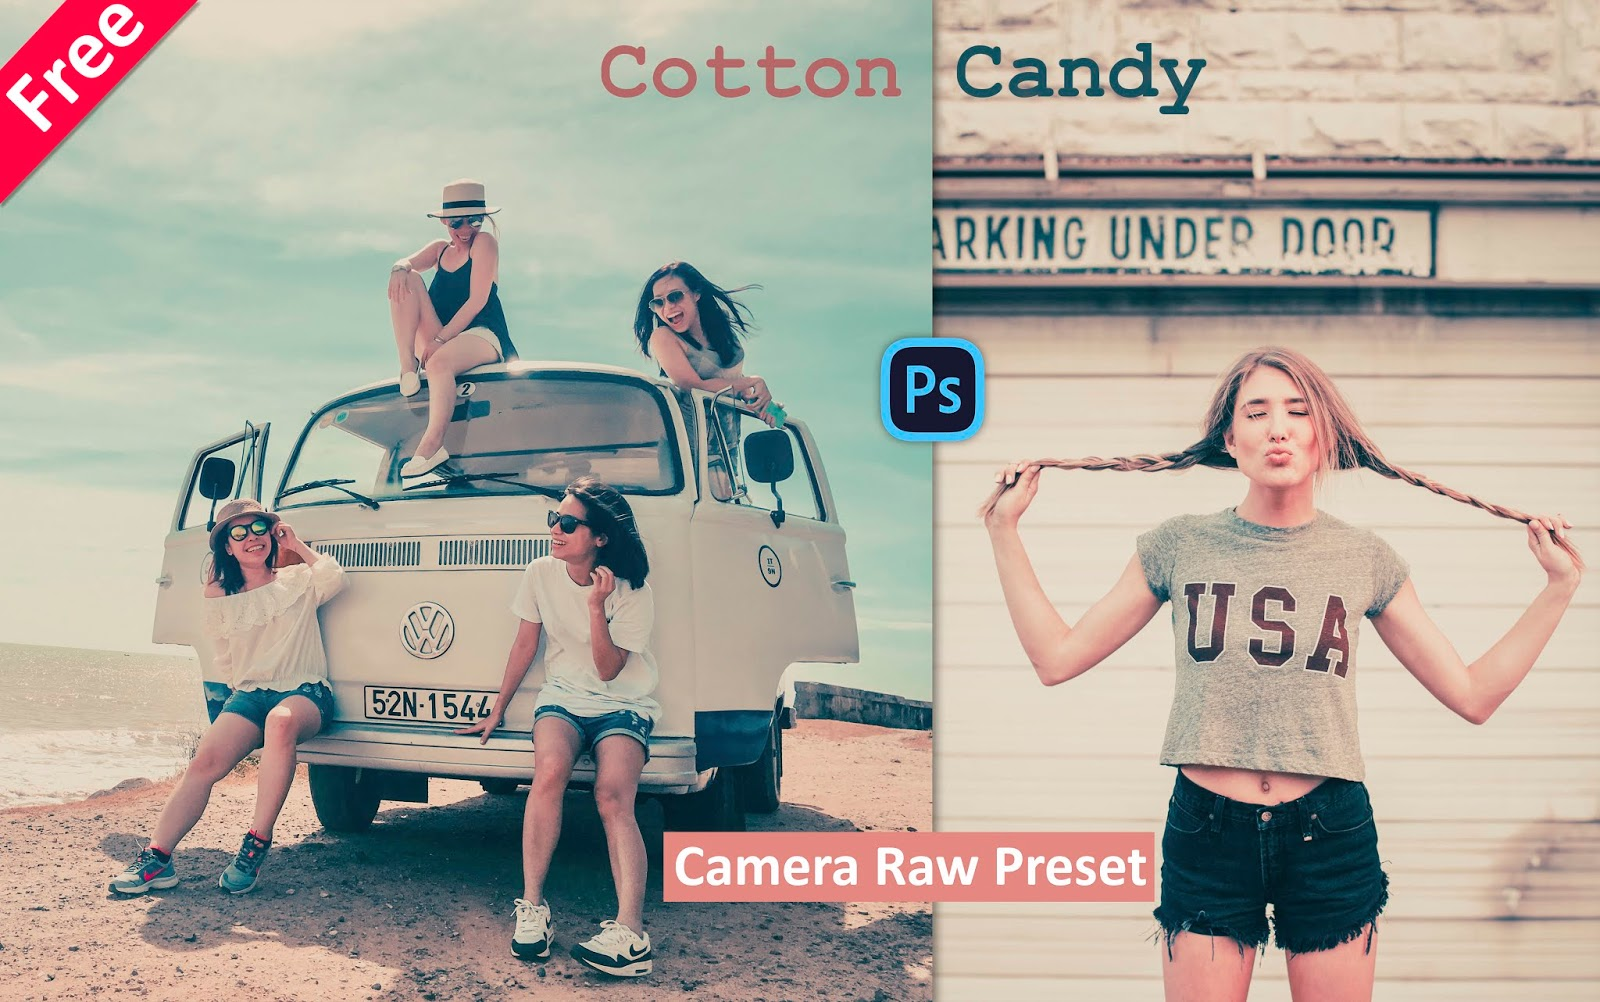 Download Cotton Candy Camera Raw Preset for Free | How to Create Cotton Candy Effect in Photoshop